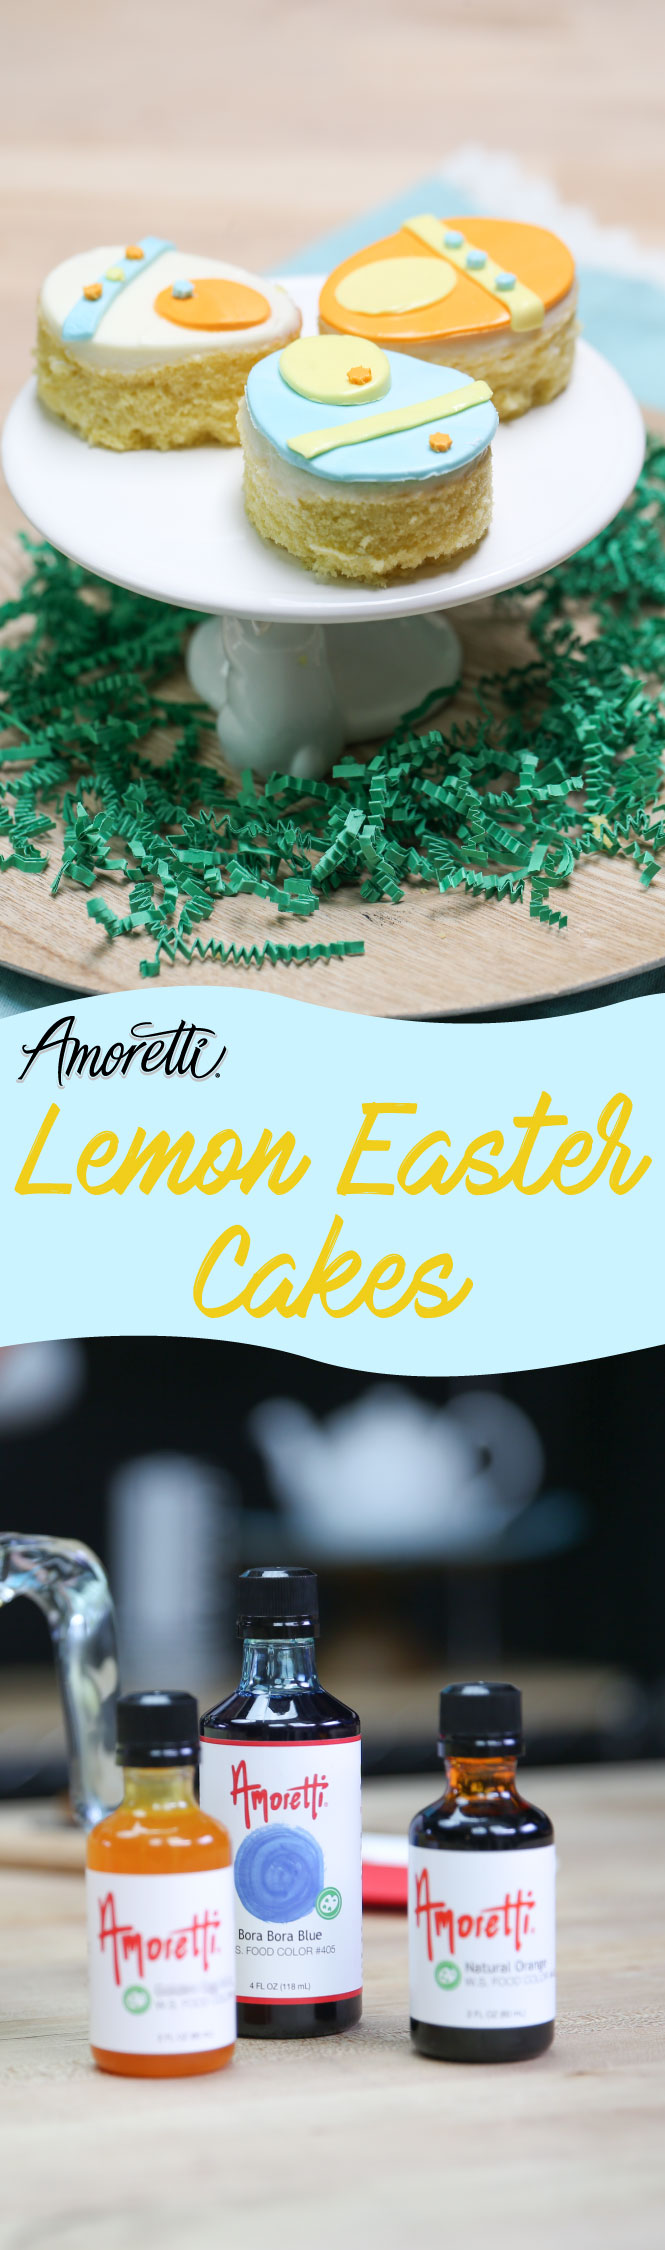 Look no further, this is the perfect recipe for Easter! These Lemon Easter Cakes are super adorable and delicious!